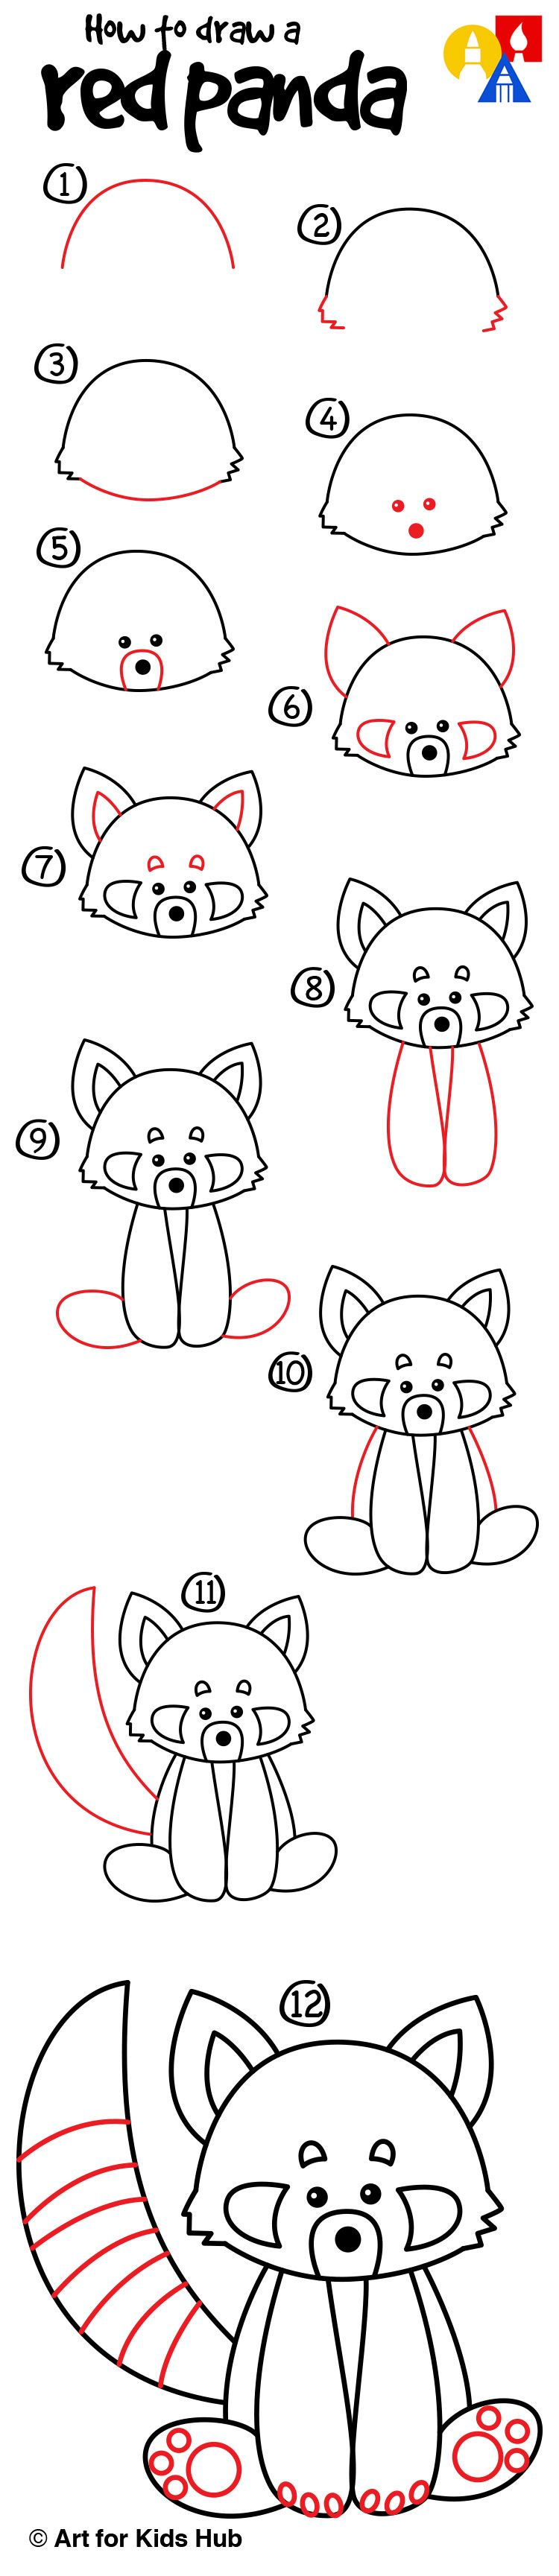 How To Draw A Red Panda  Art For Kids Hub